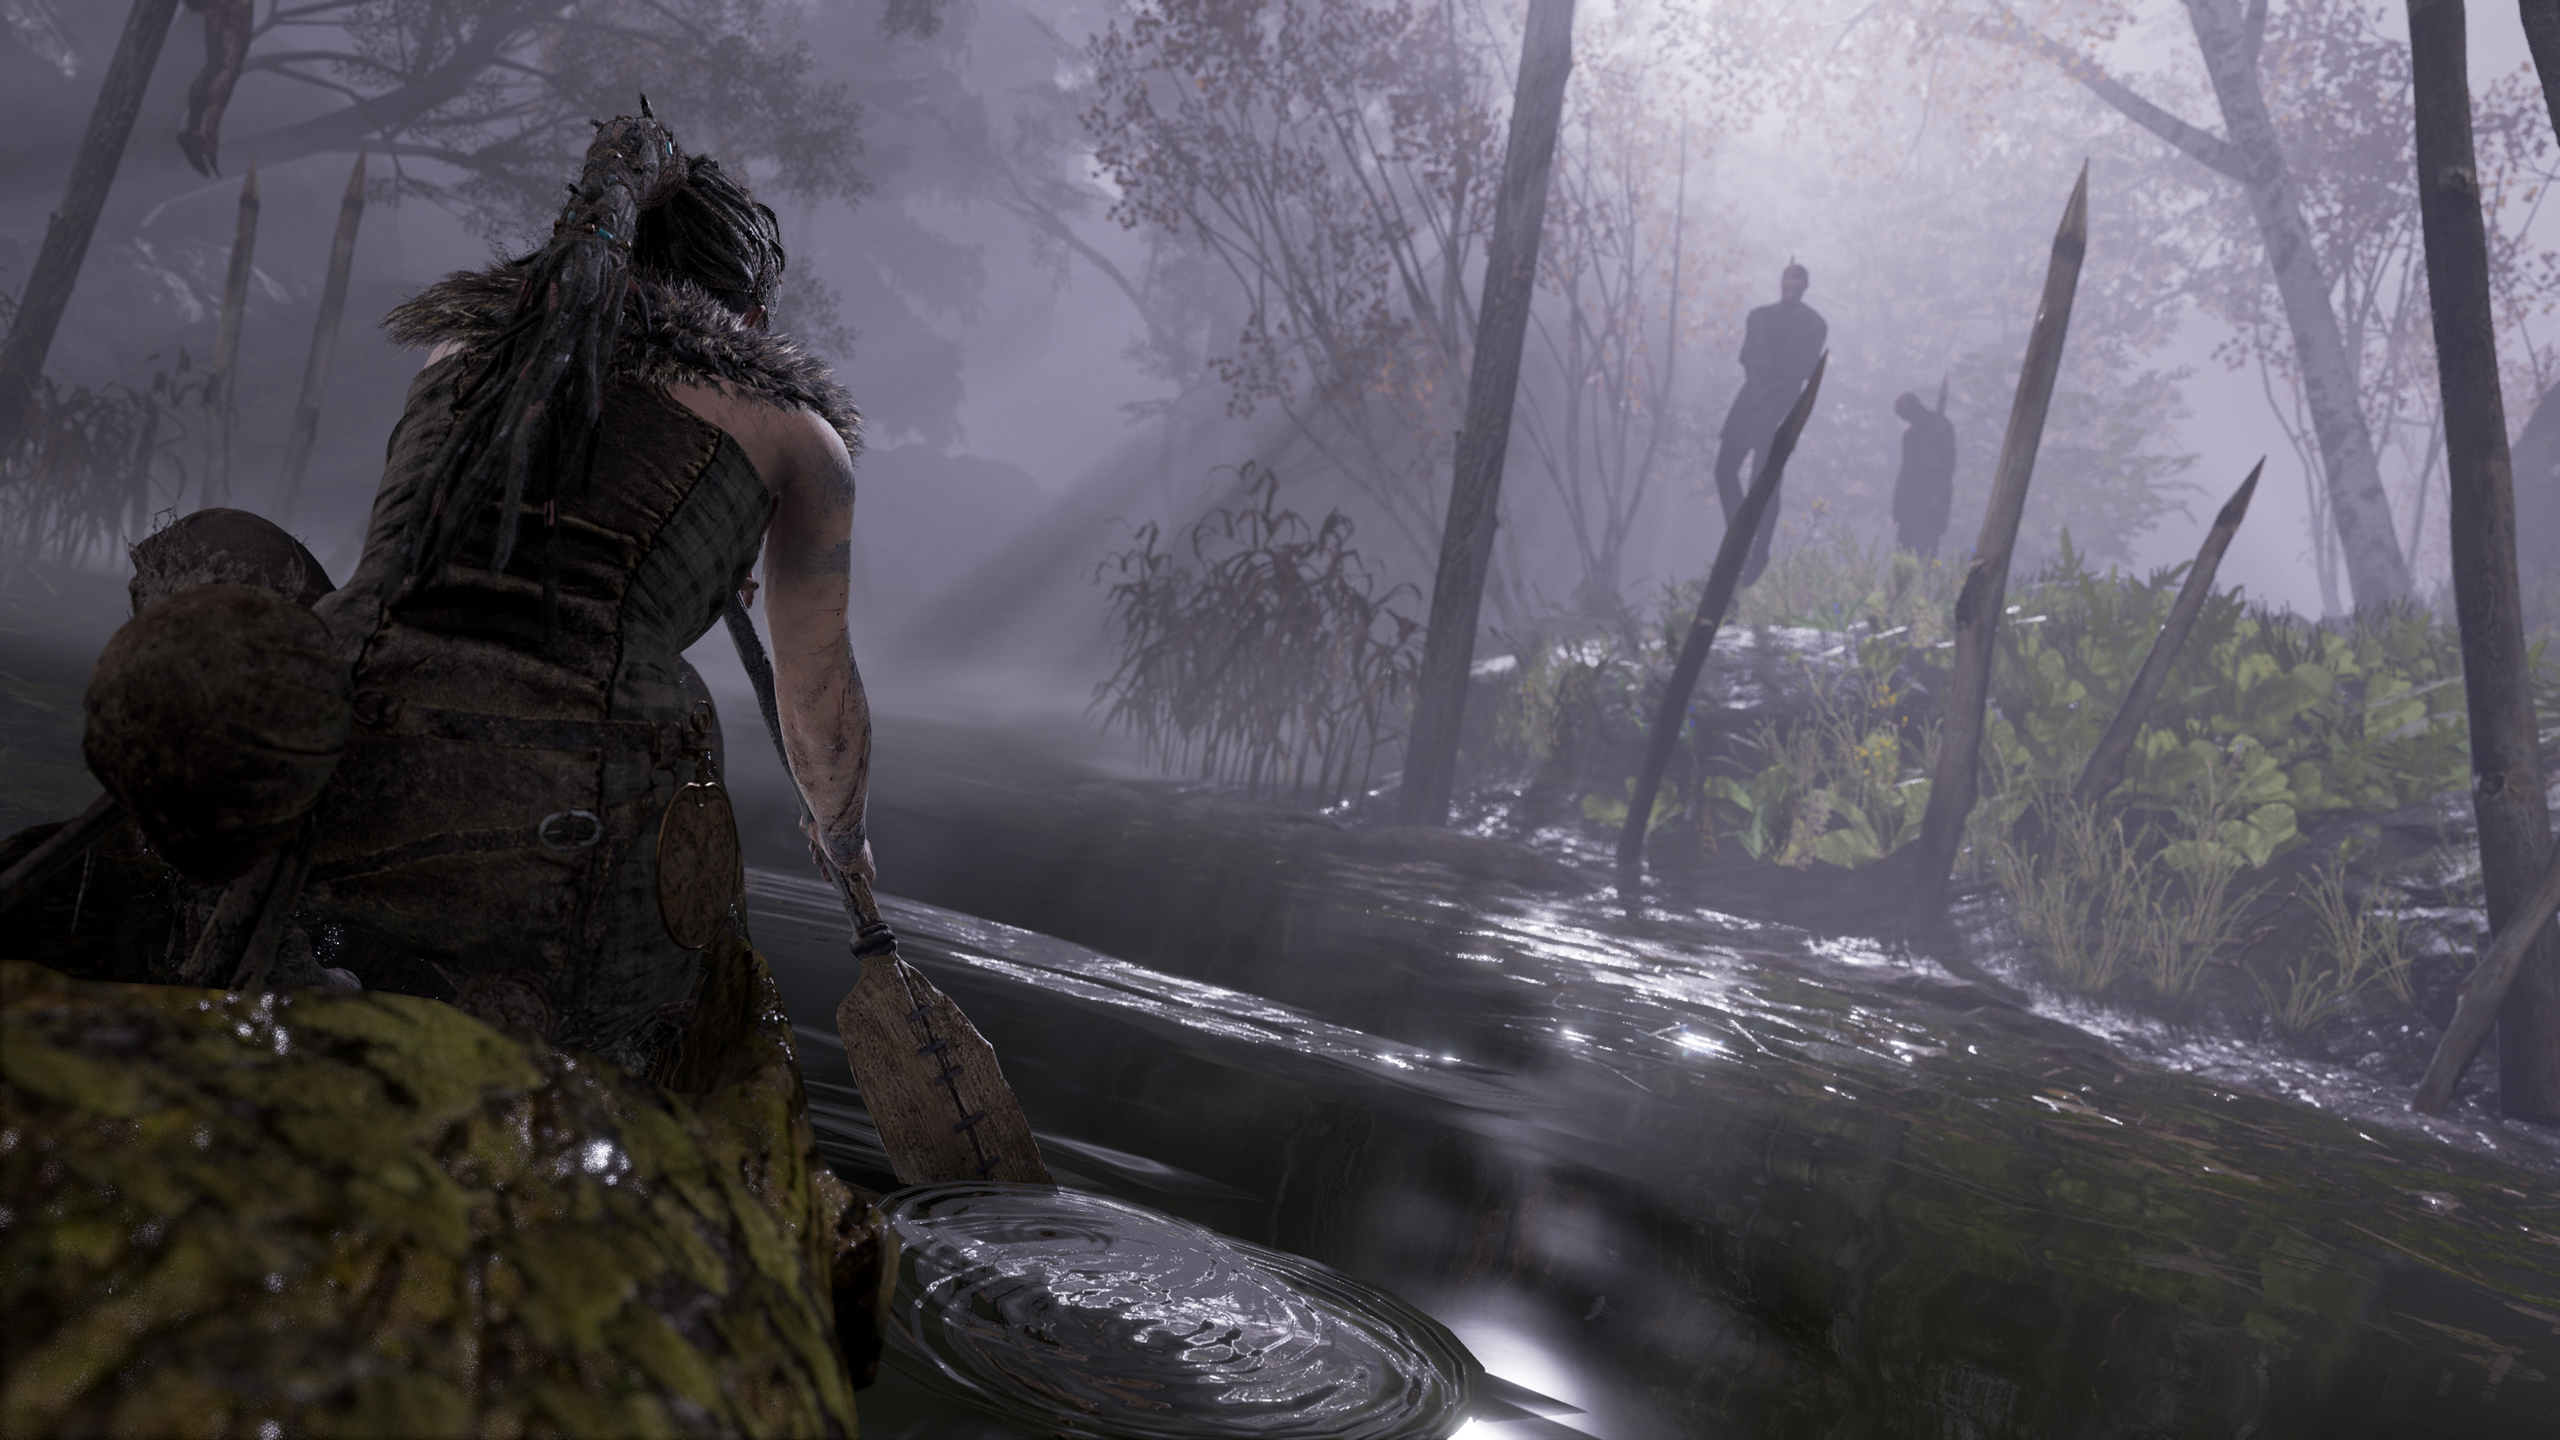 Senua paddling in a log in the woods